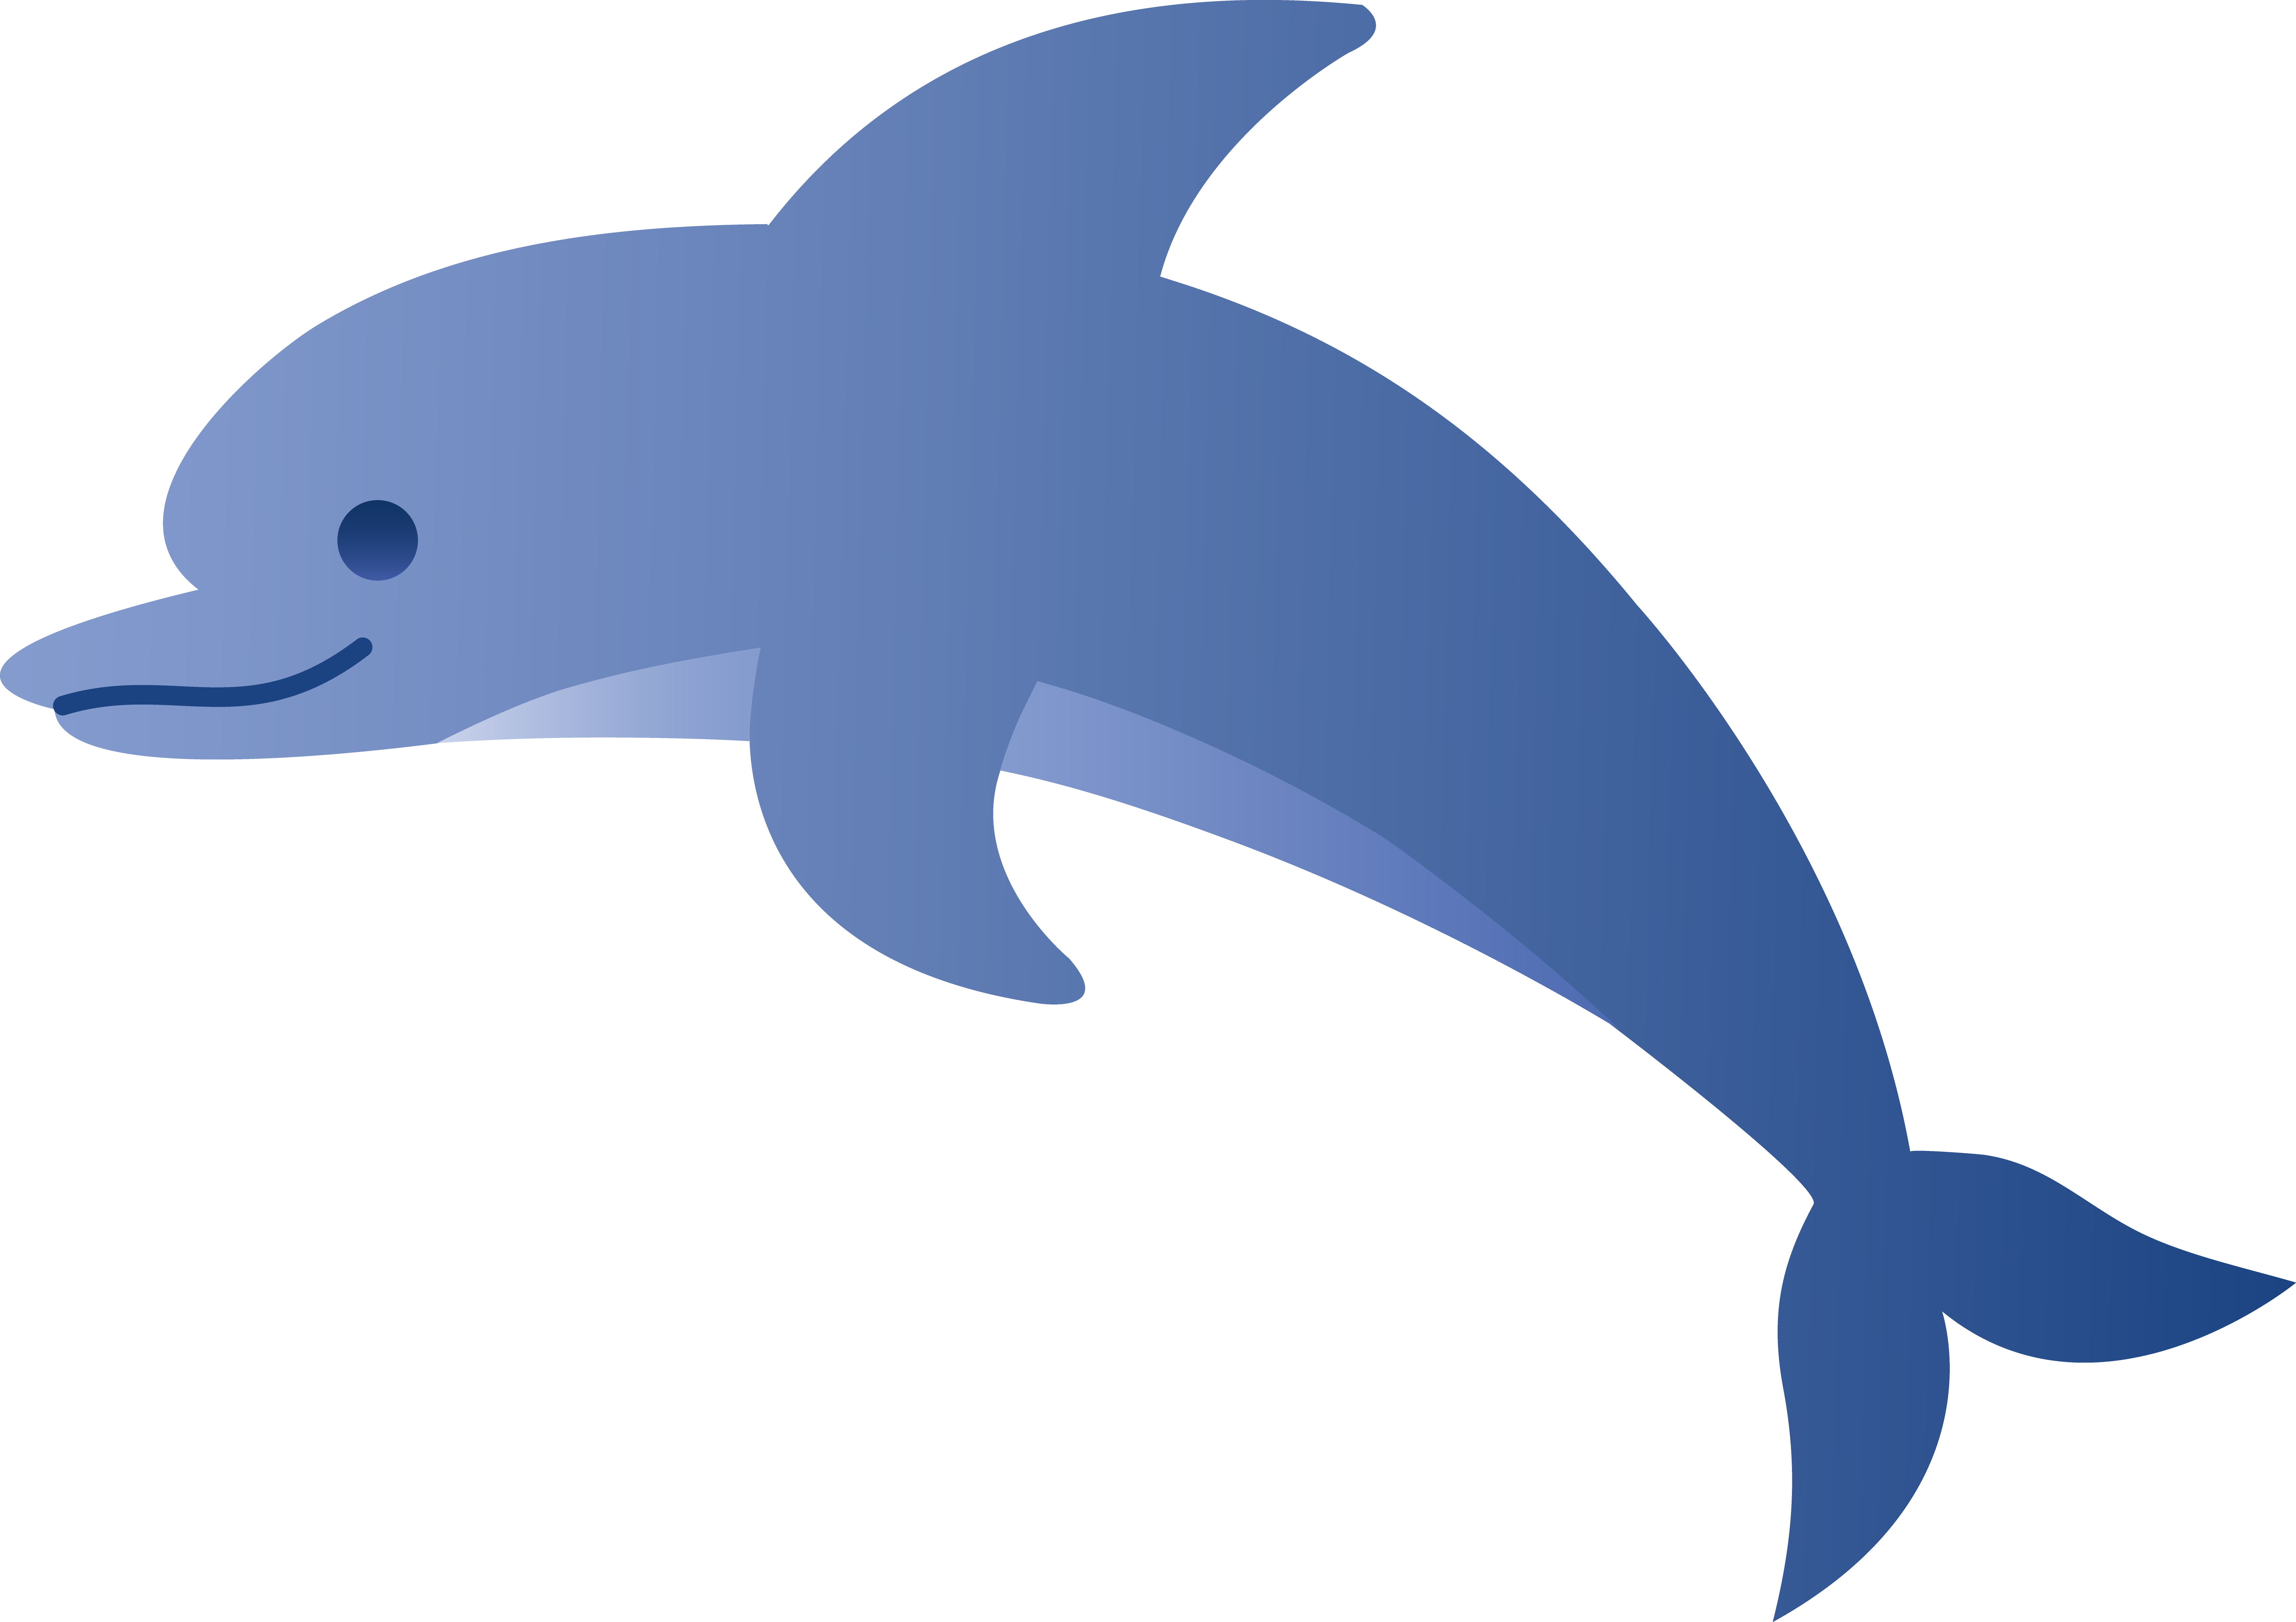 Cute dolphin clipart image black and white 82+ Cute Dolphin Clipart | ClipartLook image black and white